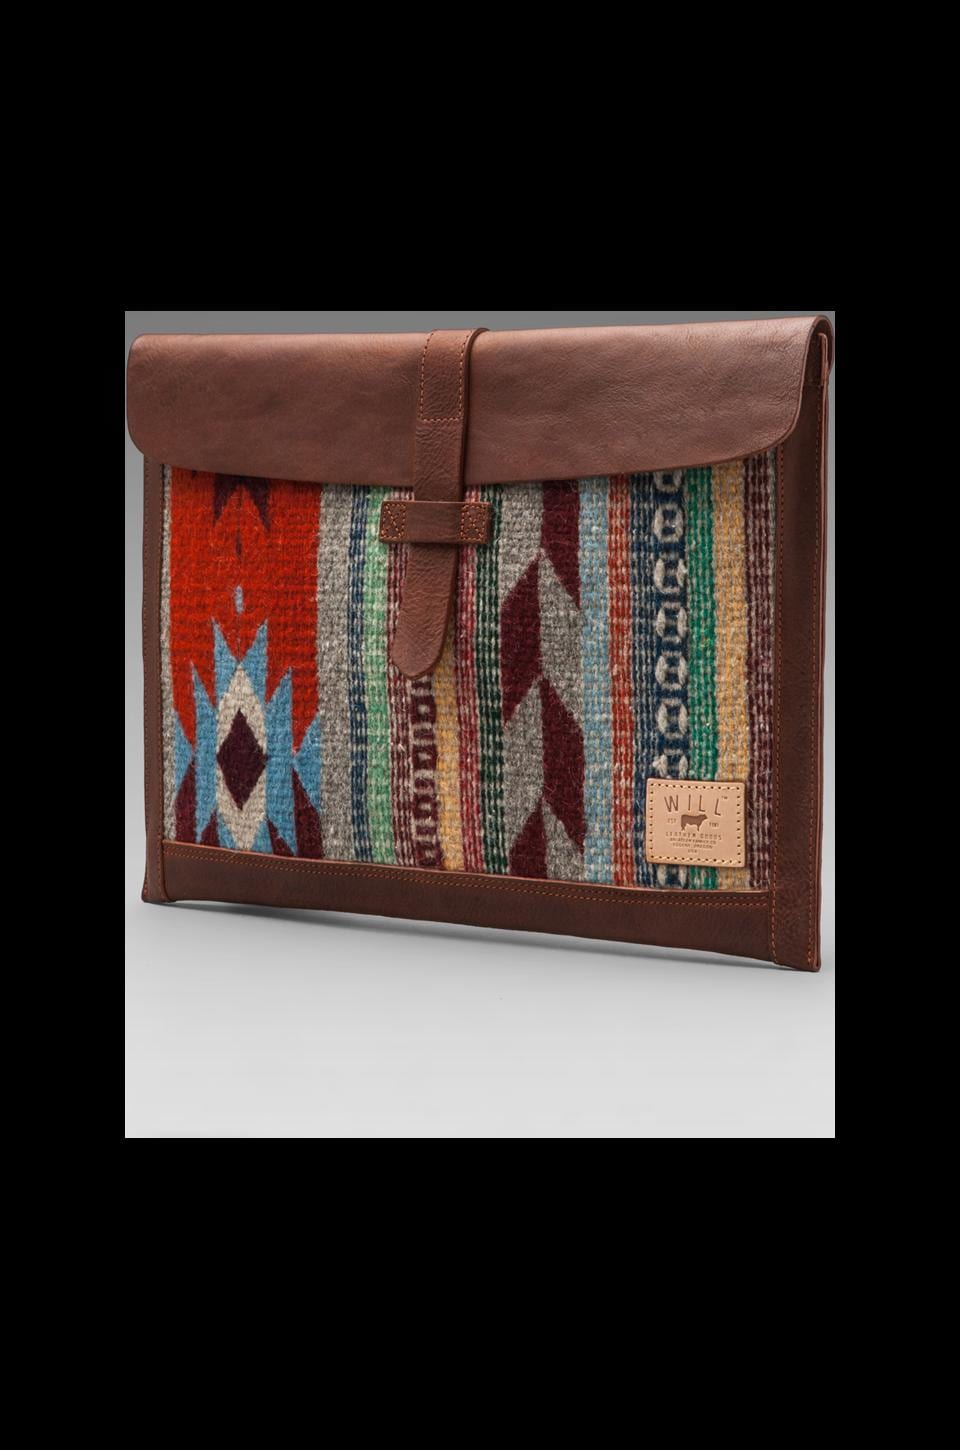 WILL Leather Goods Oaxacan Laptop Sleeve in Cognac